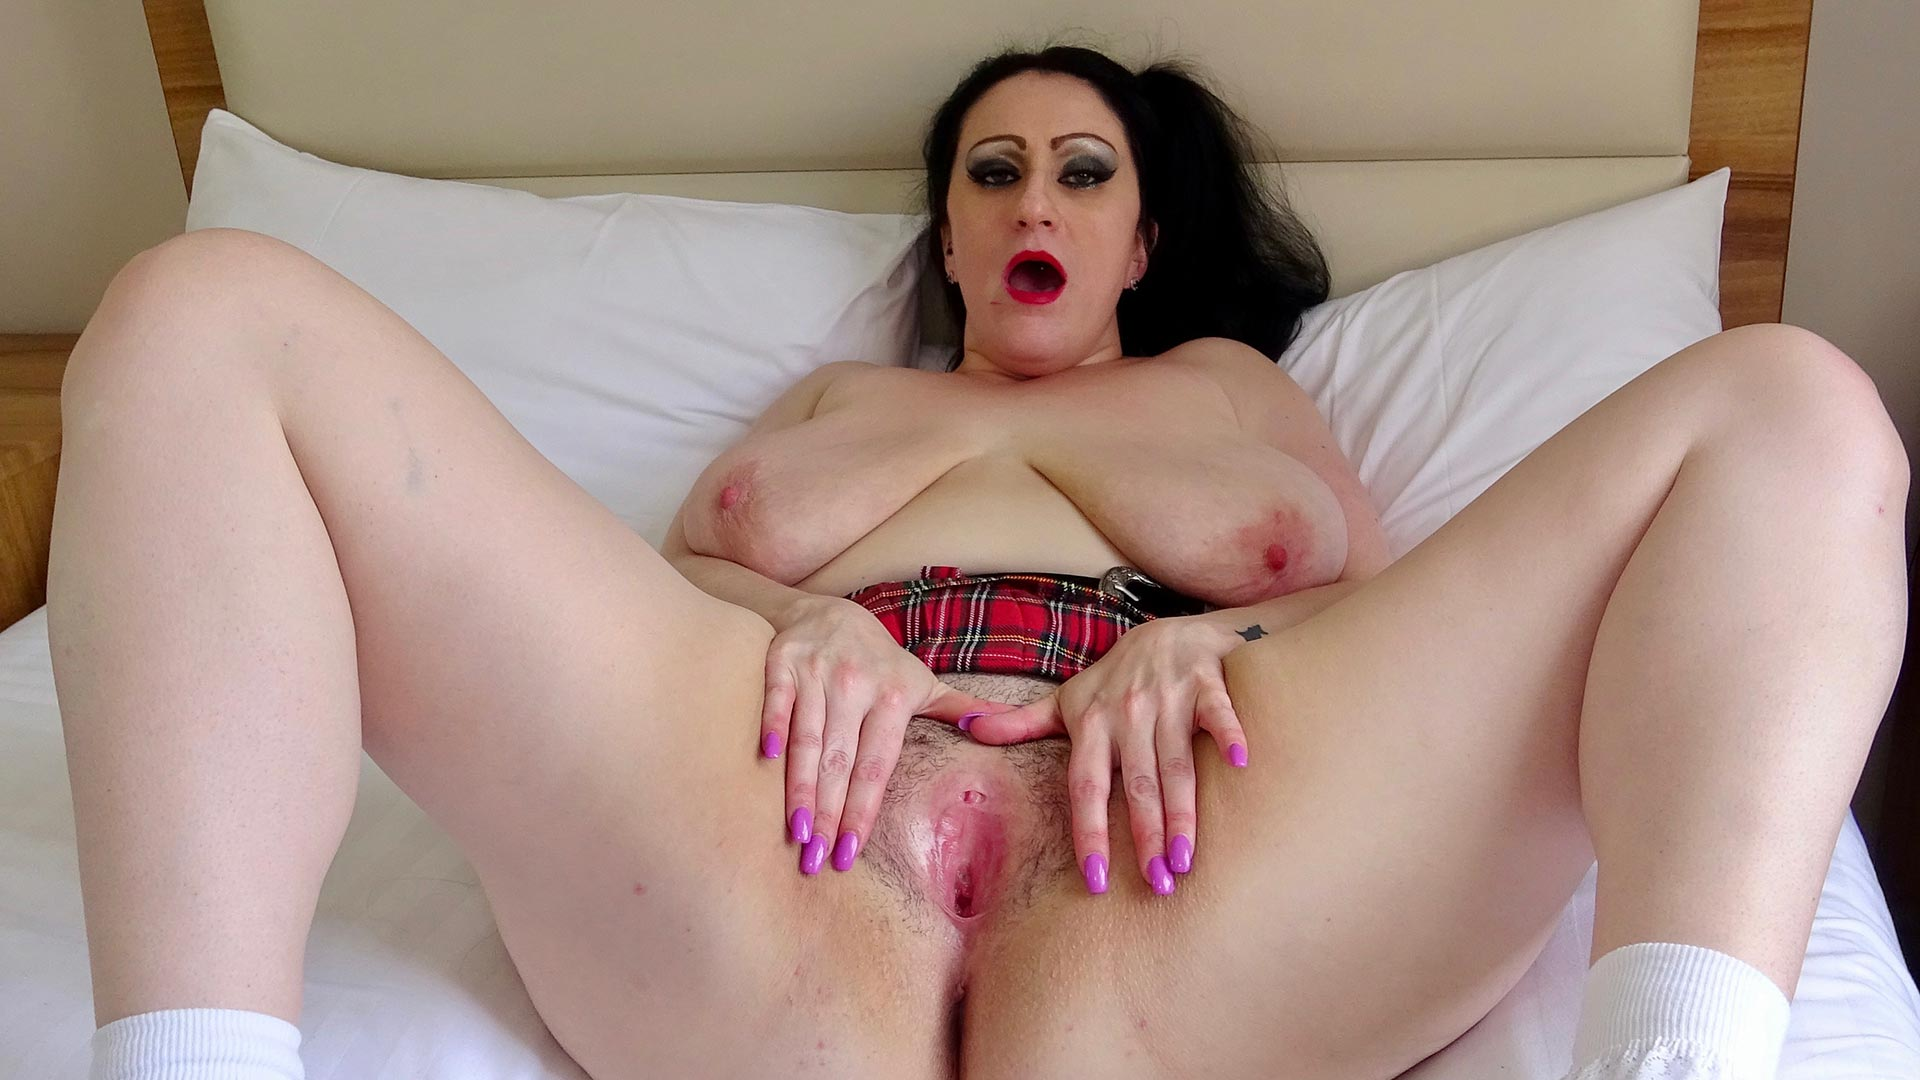 Preview Pascal Sub Sluts - SubSlut Curvy Gal: Flashes at strangers, wanks & cums